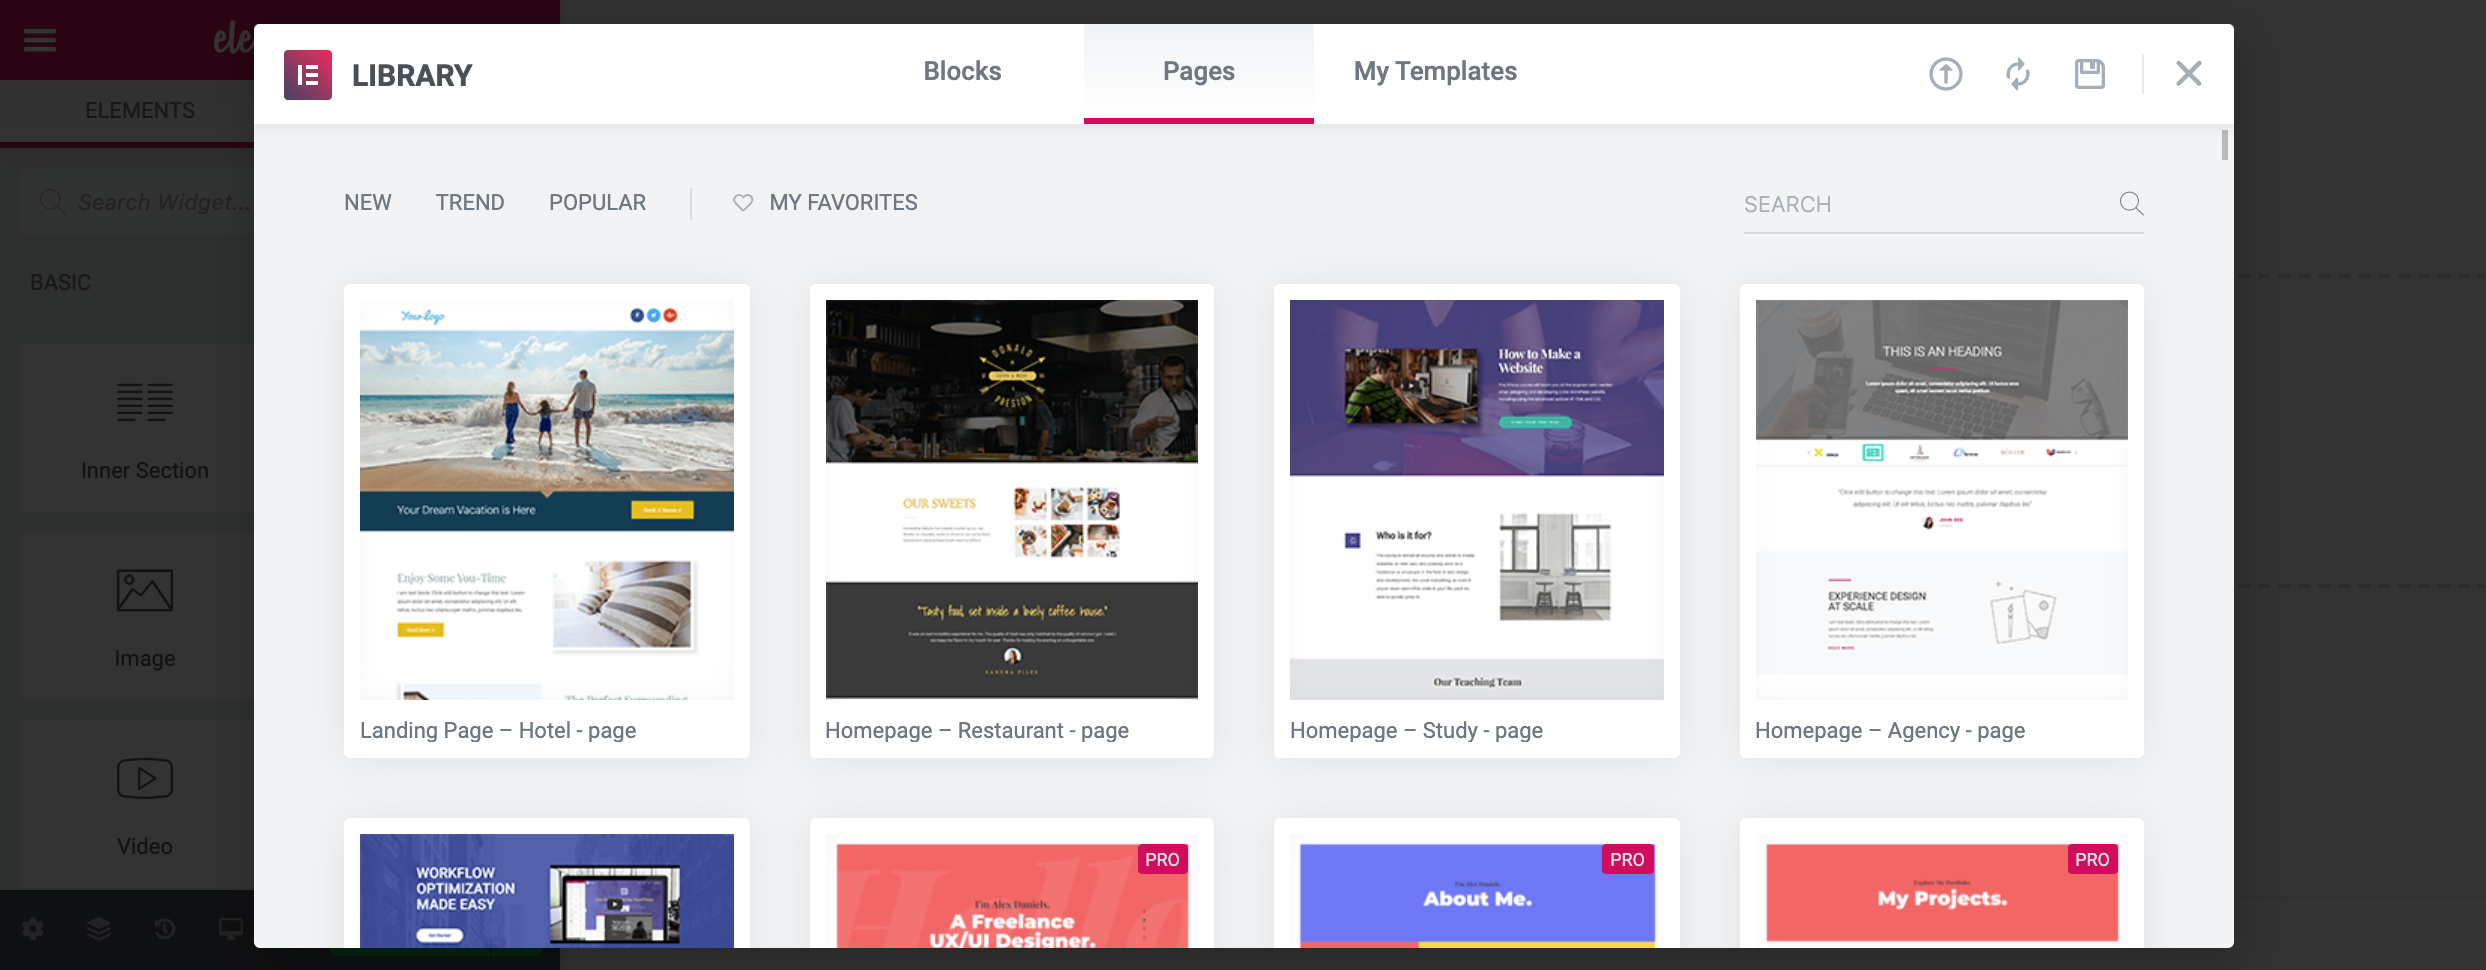 The Elementor Library can be filtered by blocks, pages, and your selected templates. You can also sort by new, trending, and popular.